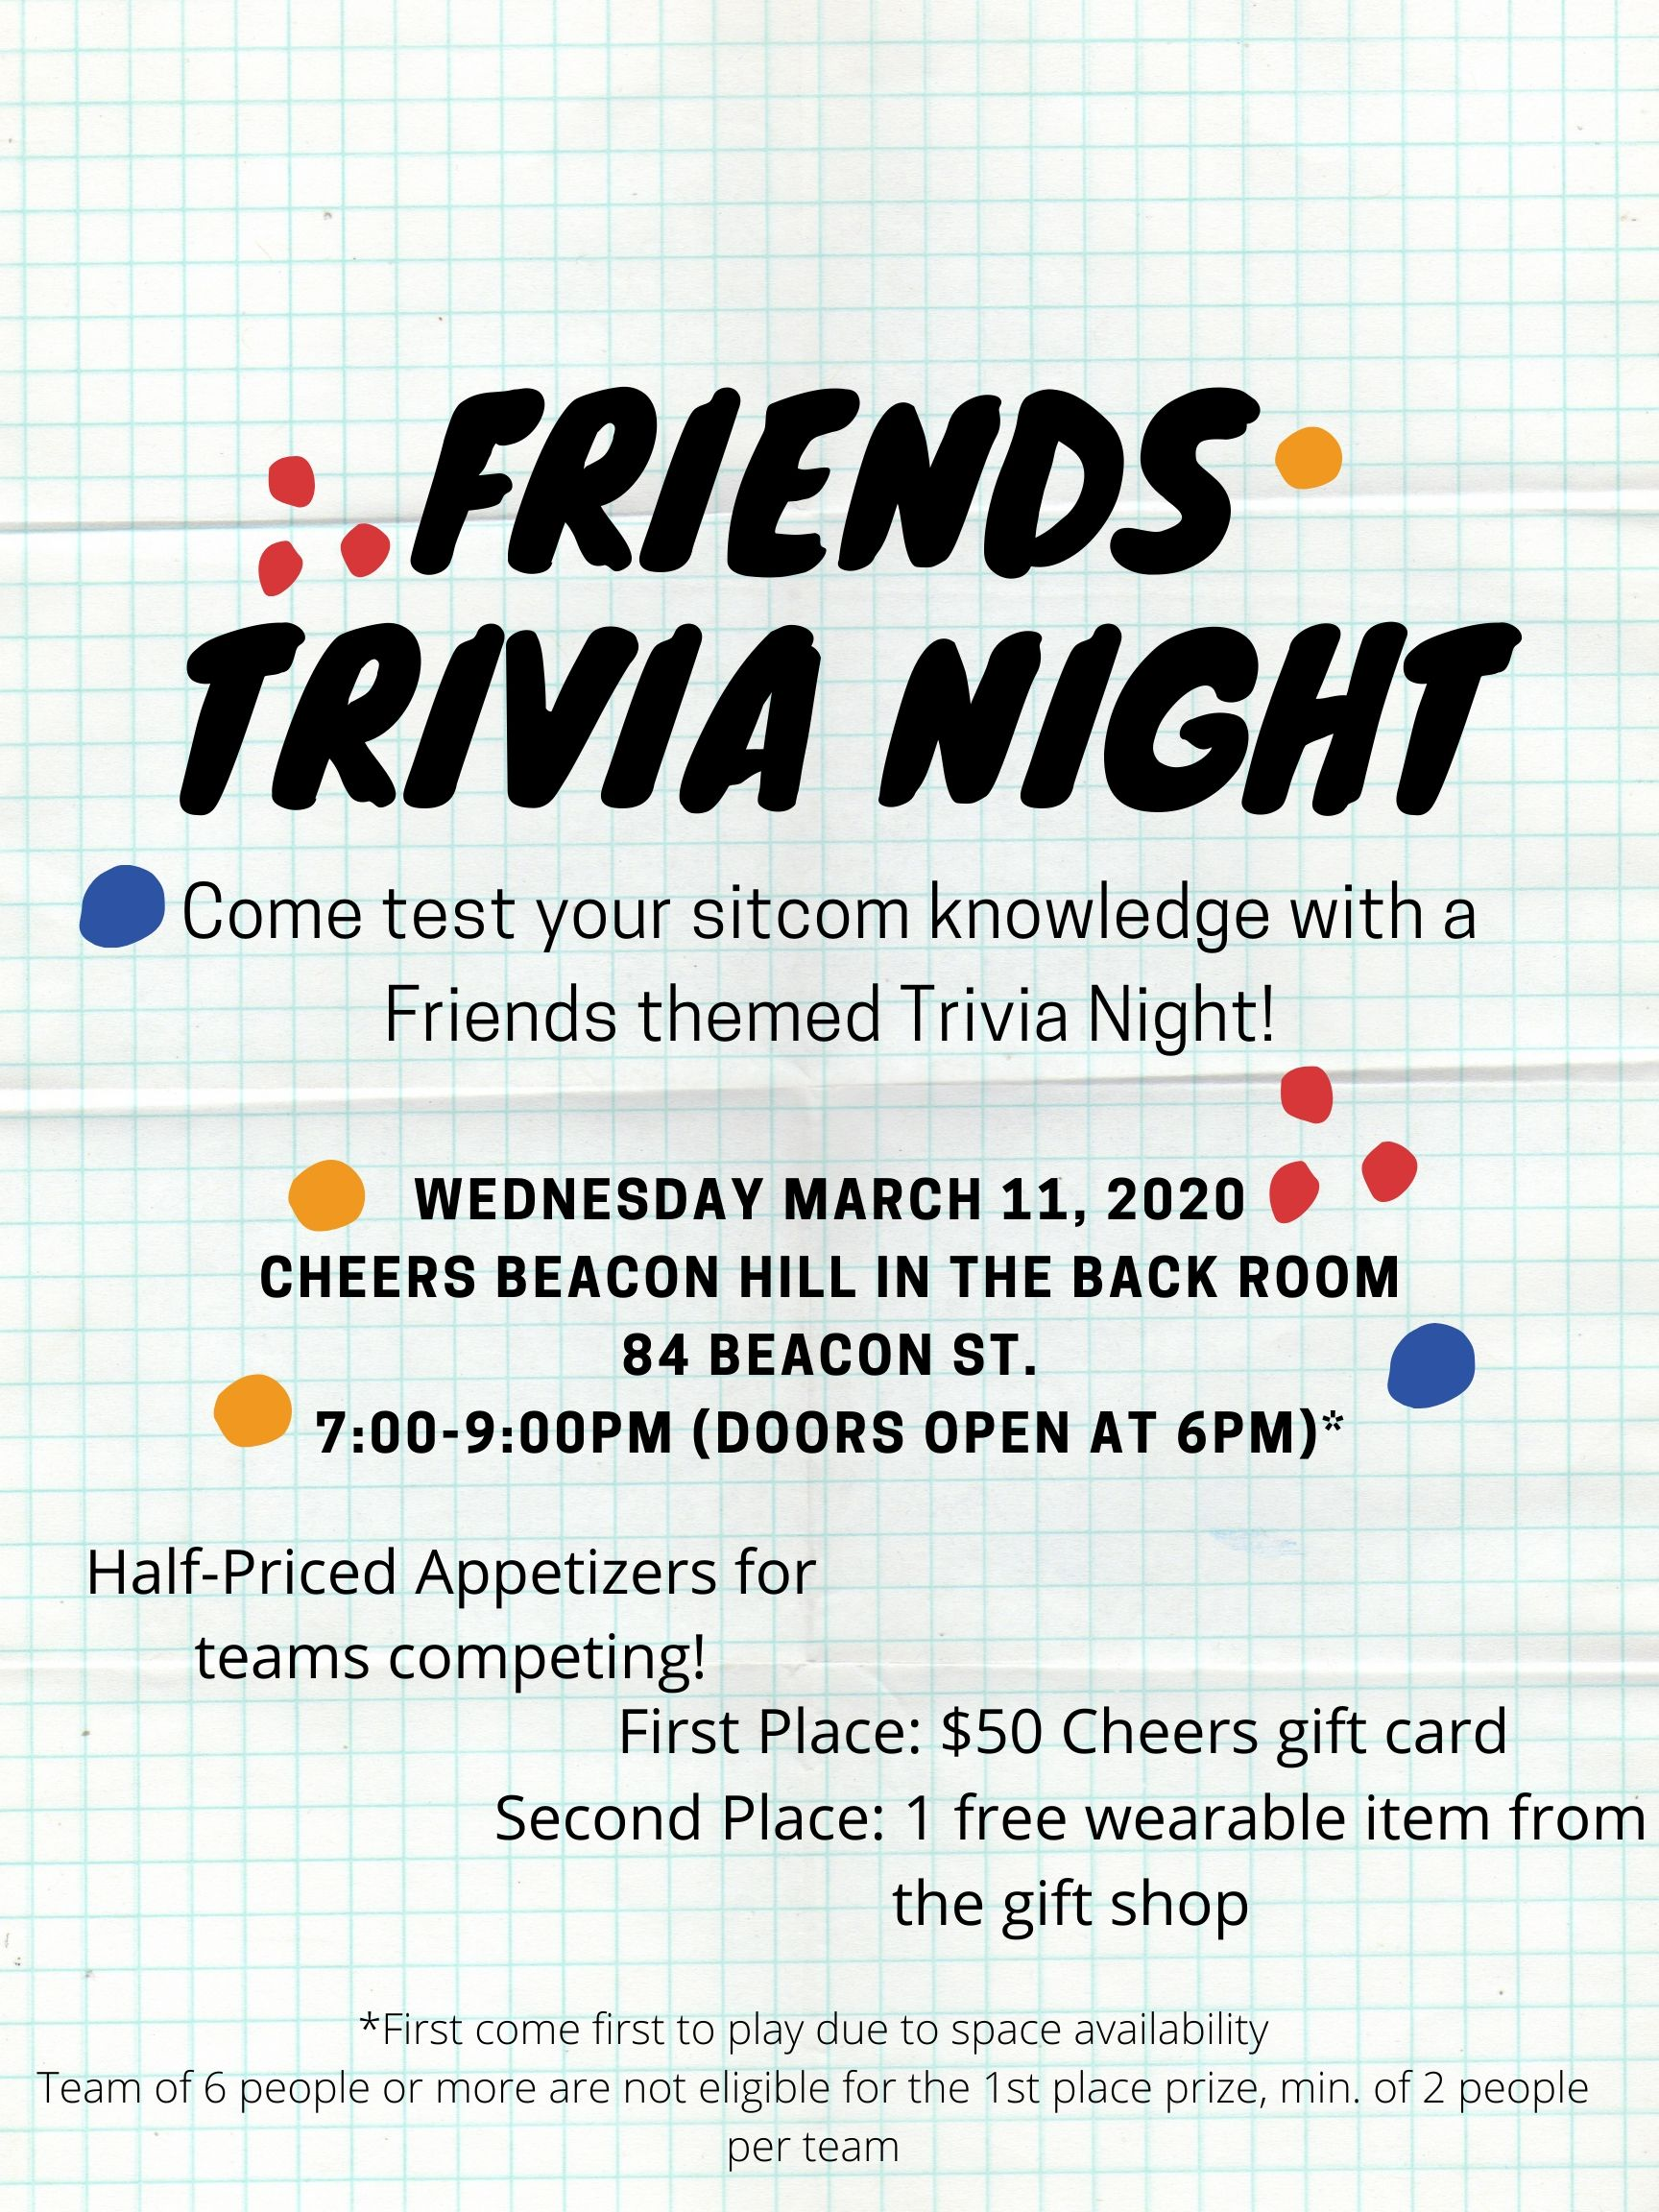 Cheers Beacon Hill - Friends Trivia 3/11